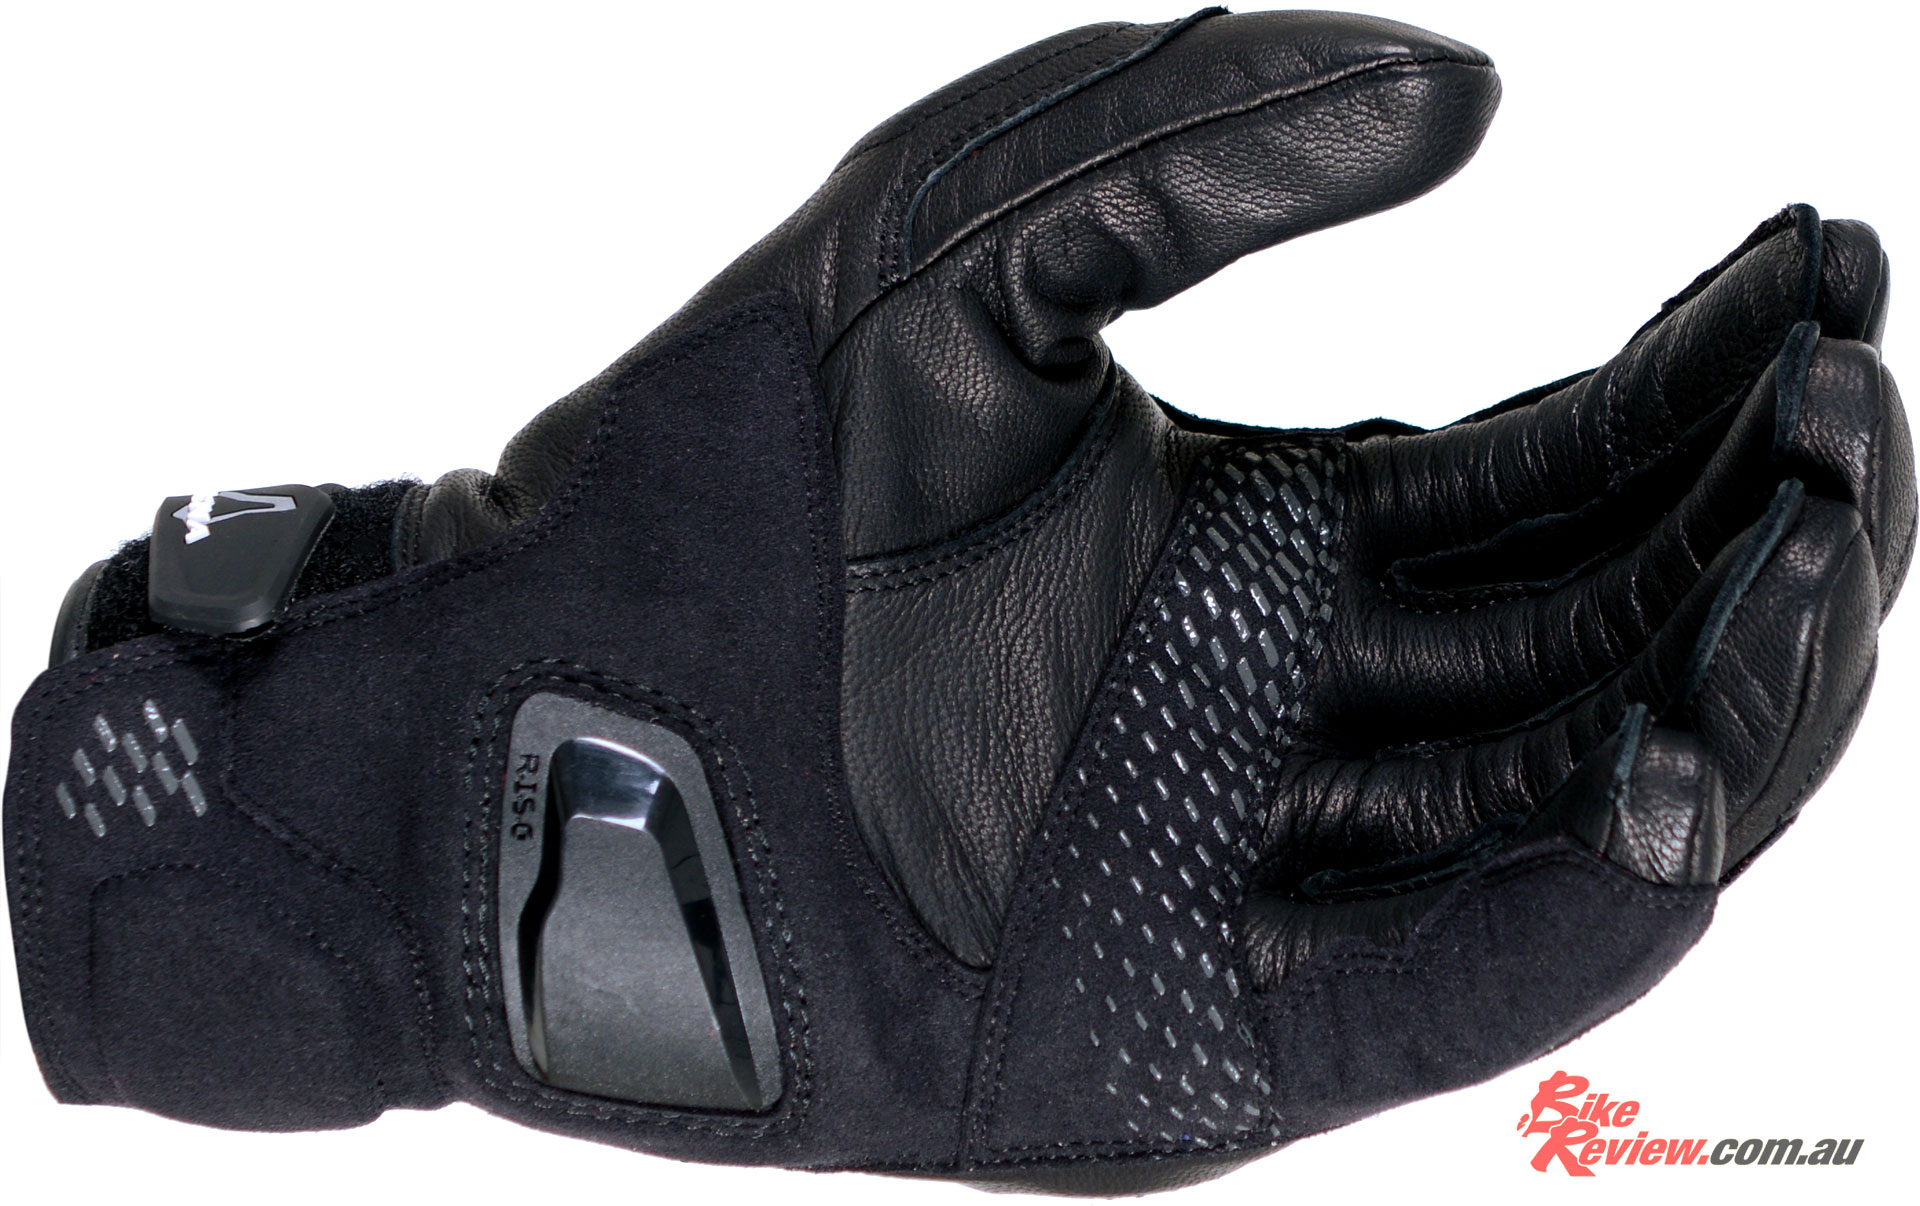 Macna Chicane Gloves - Available in sizes S-3XL